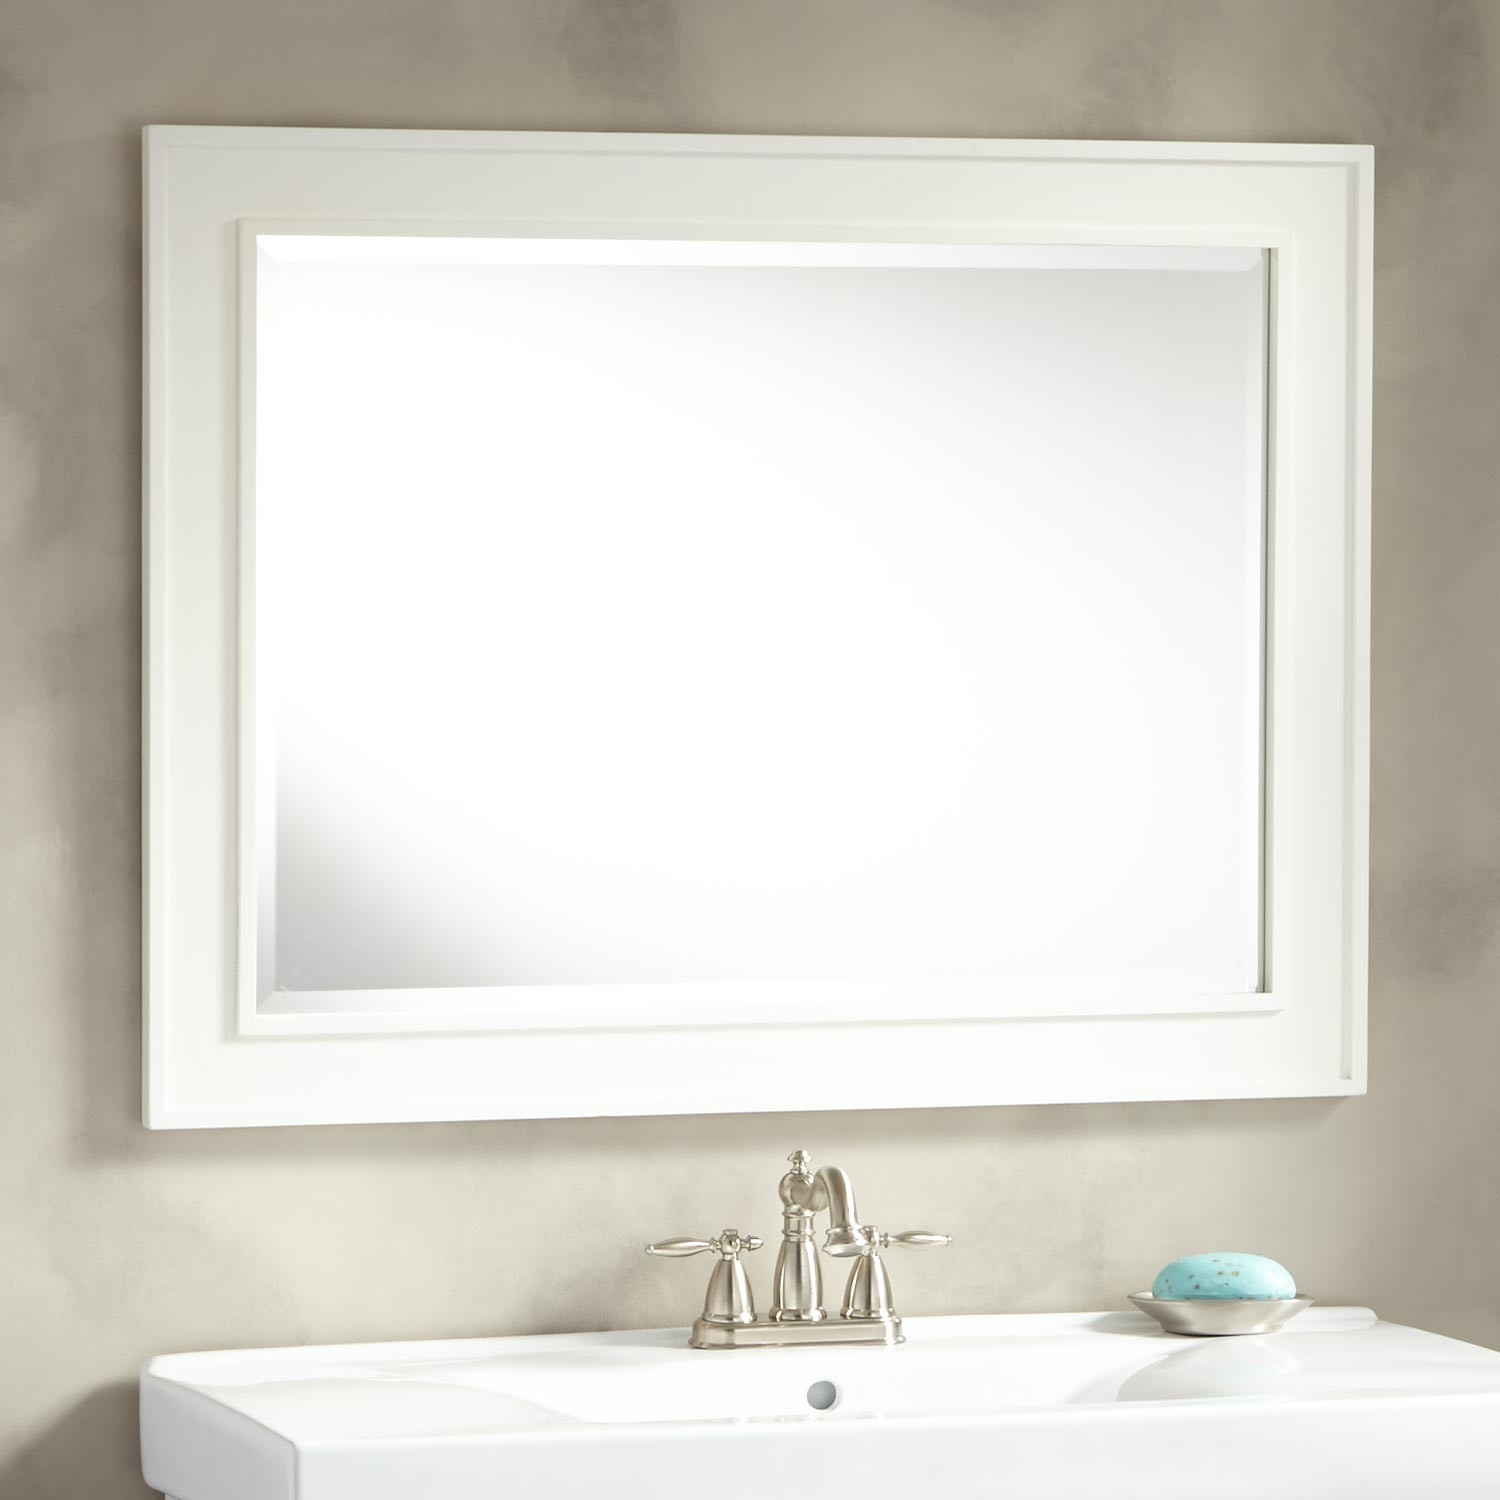 Image of: White Vanity Mirror Frame